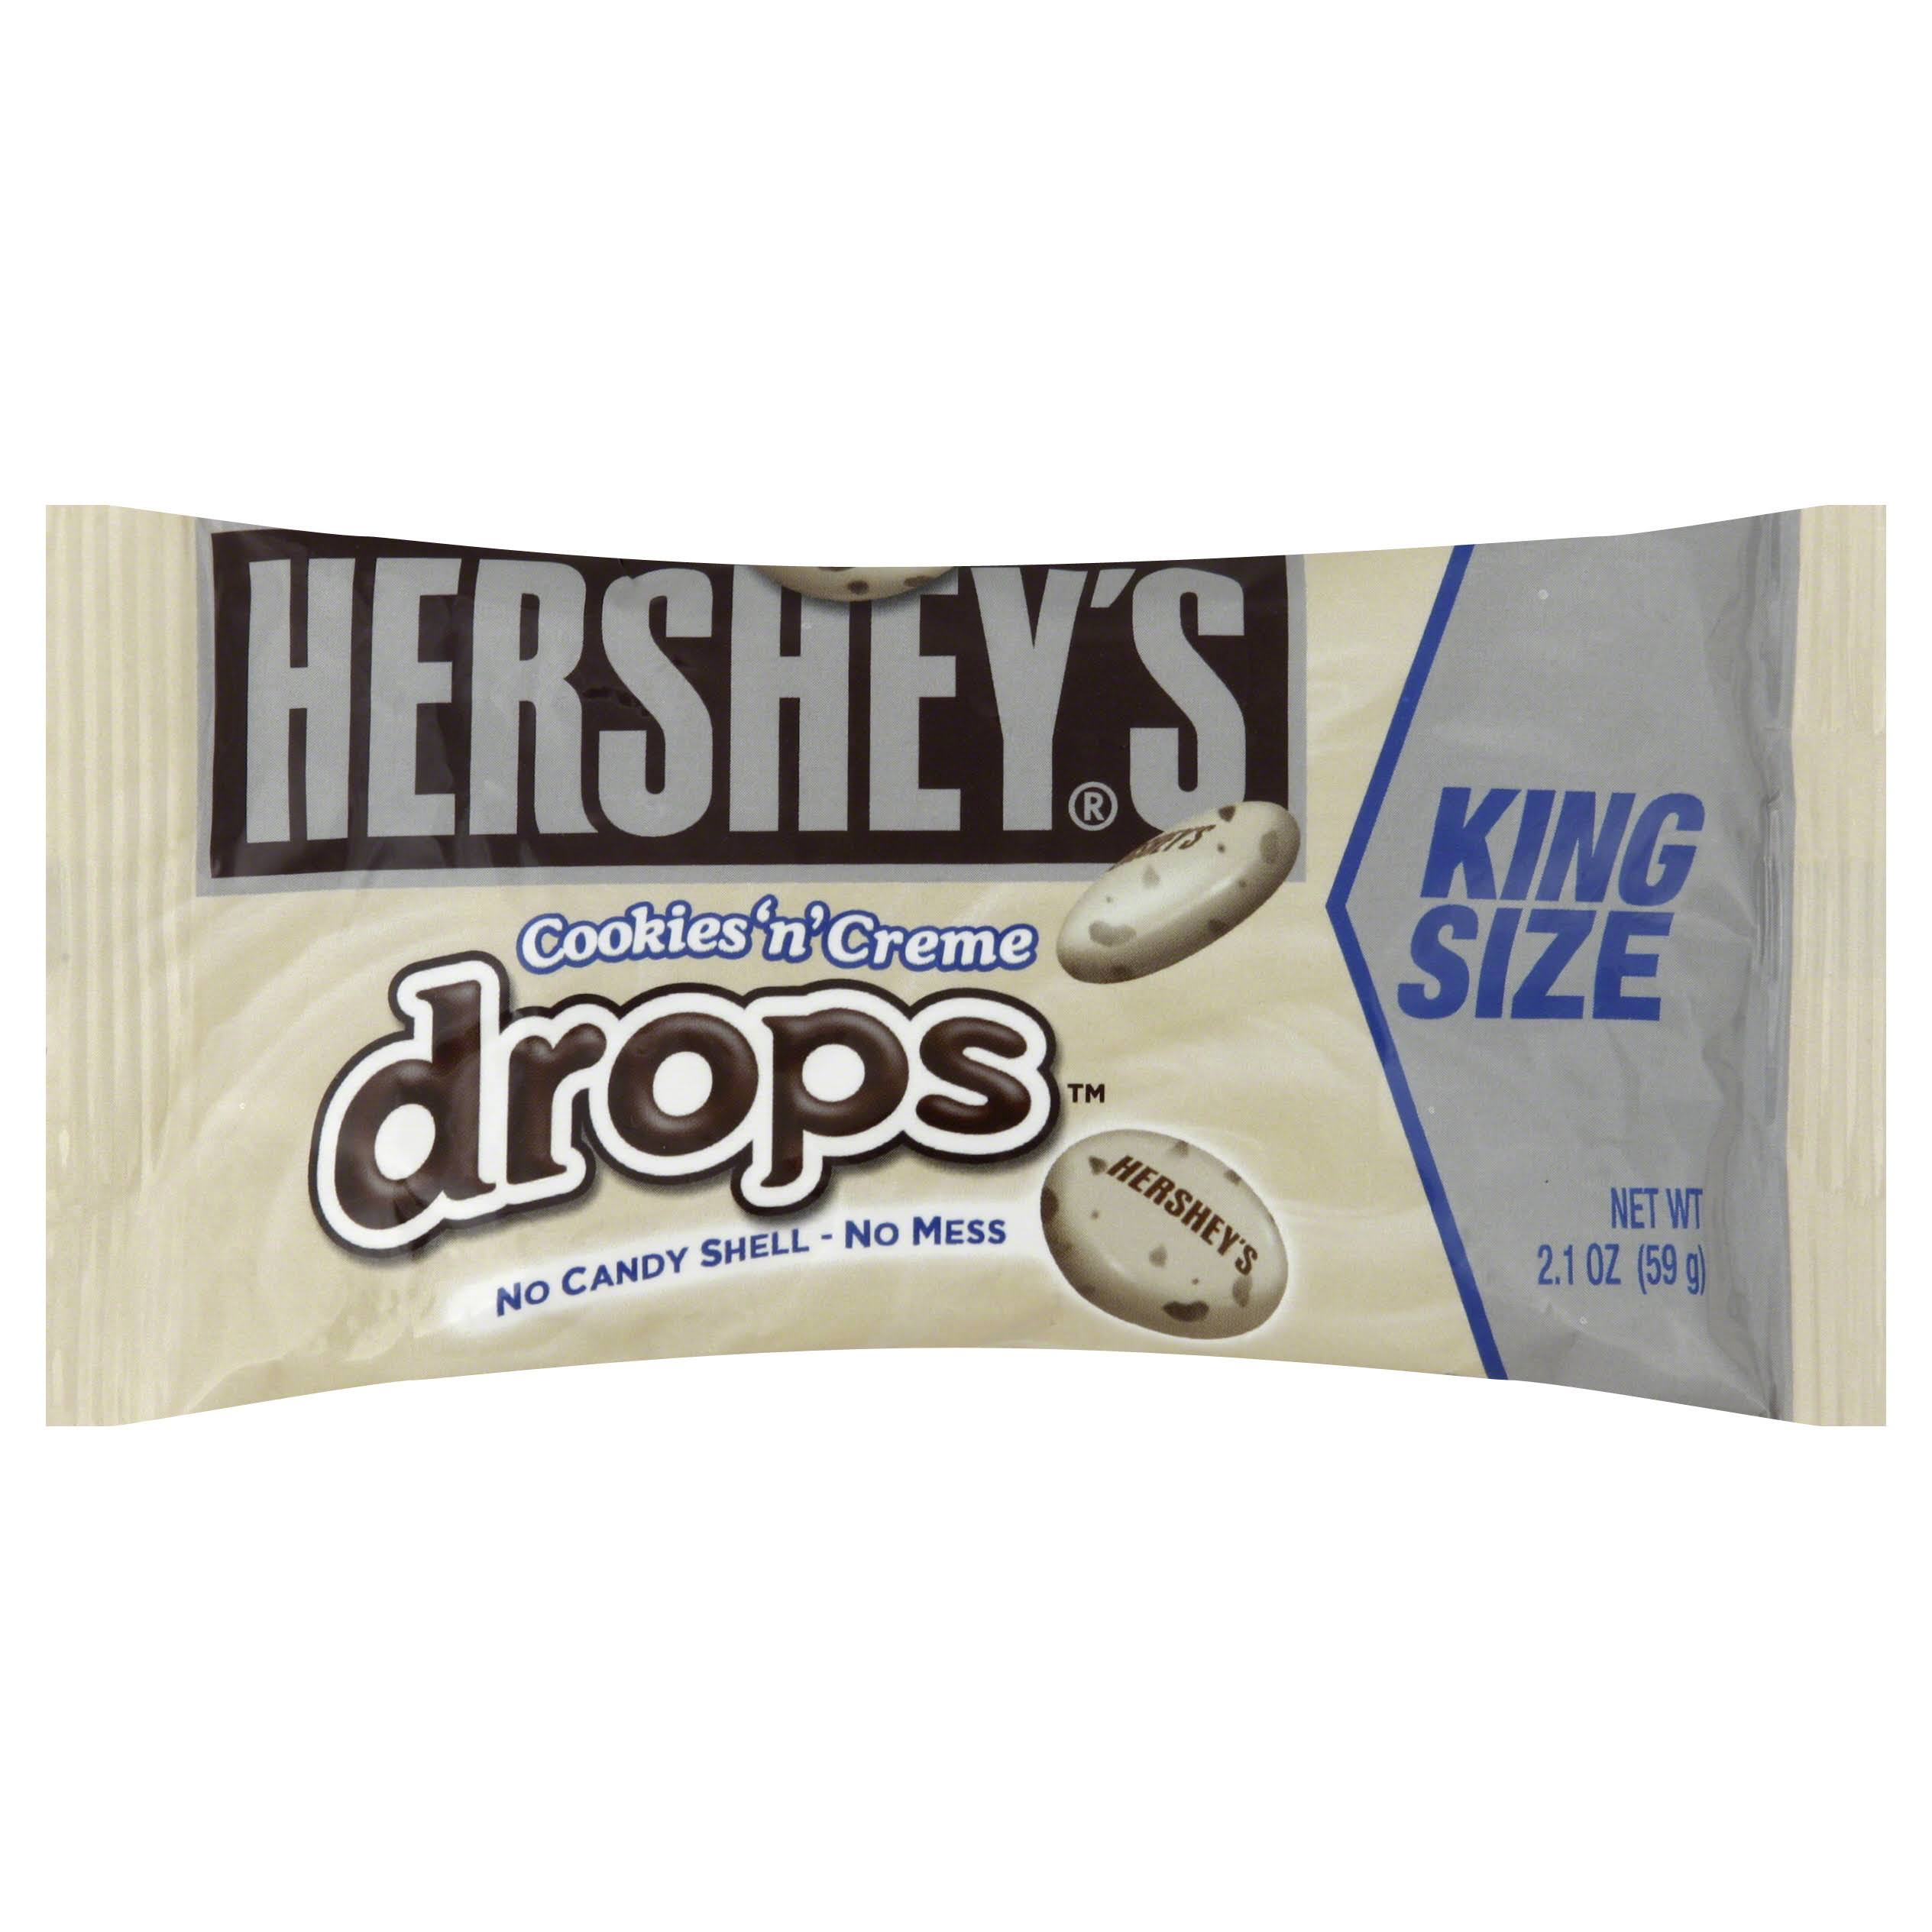 Hershey's Drops - Cookies 'n' Creme, 59g, 18 Count, King Size